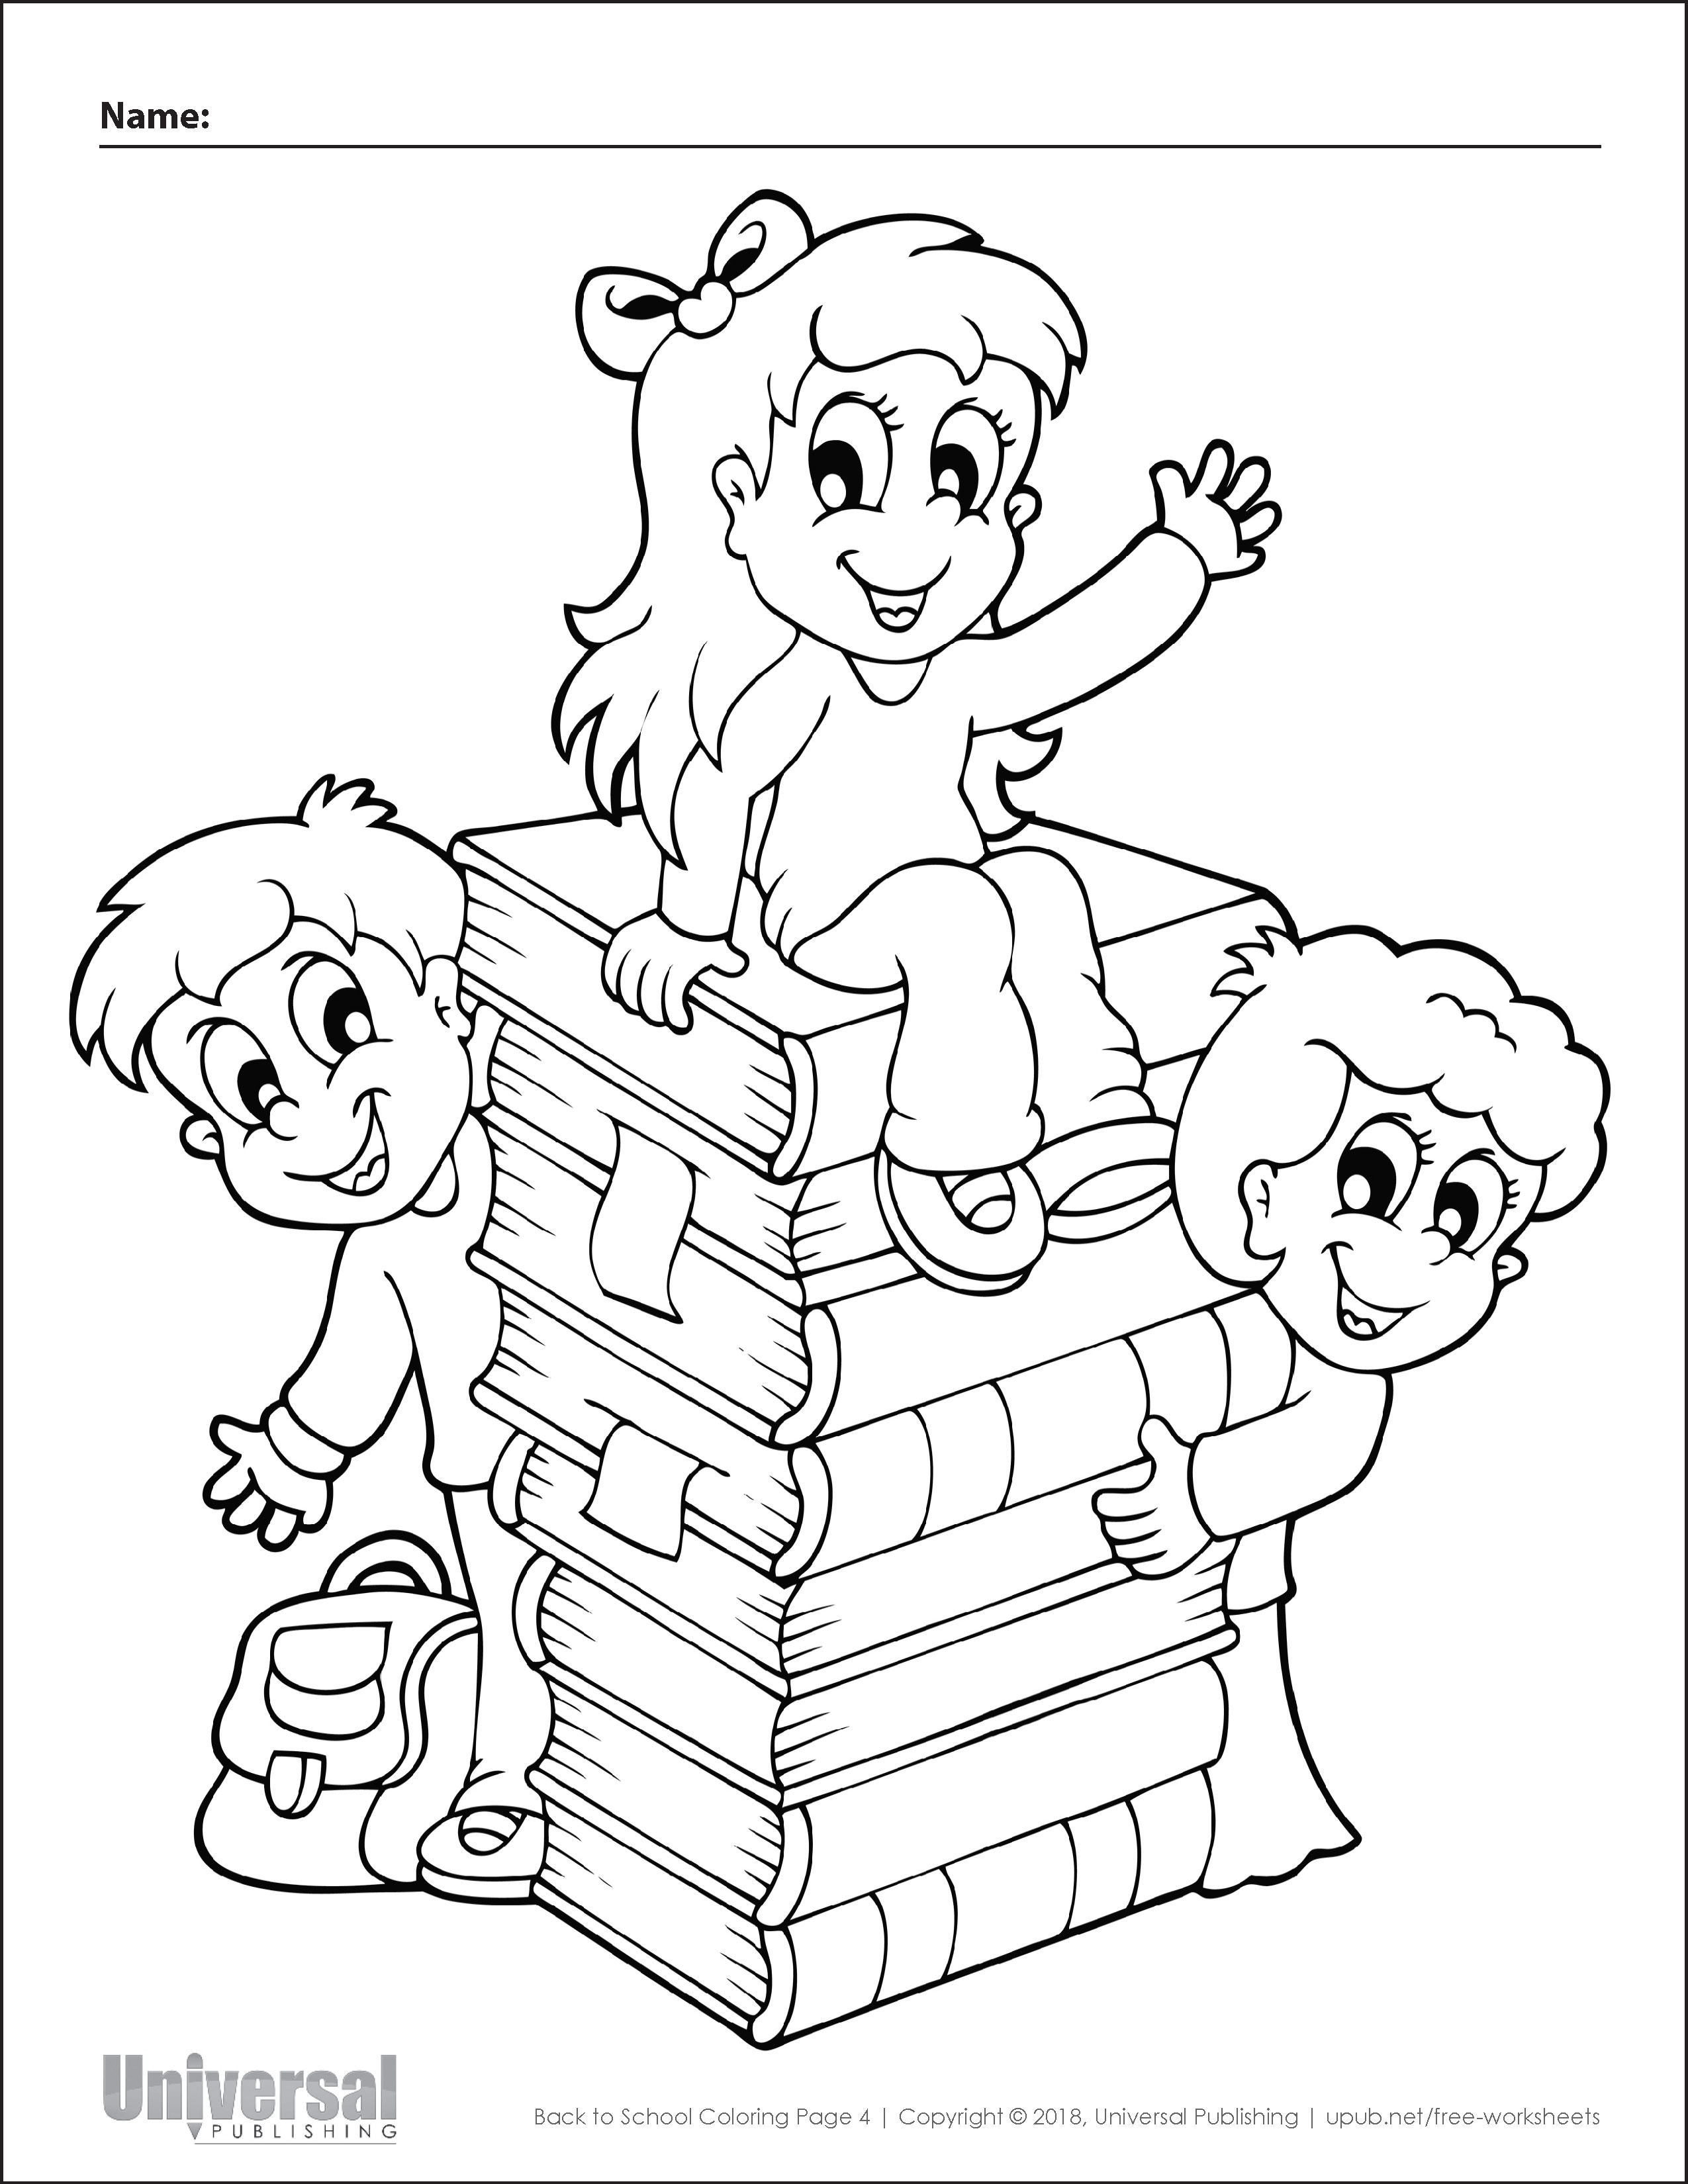 Back to School Coloring Page 4